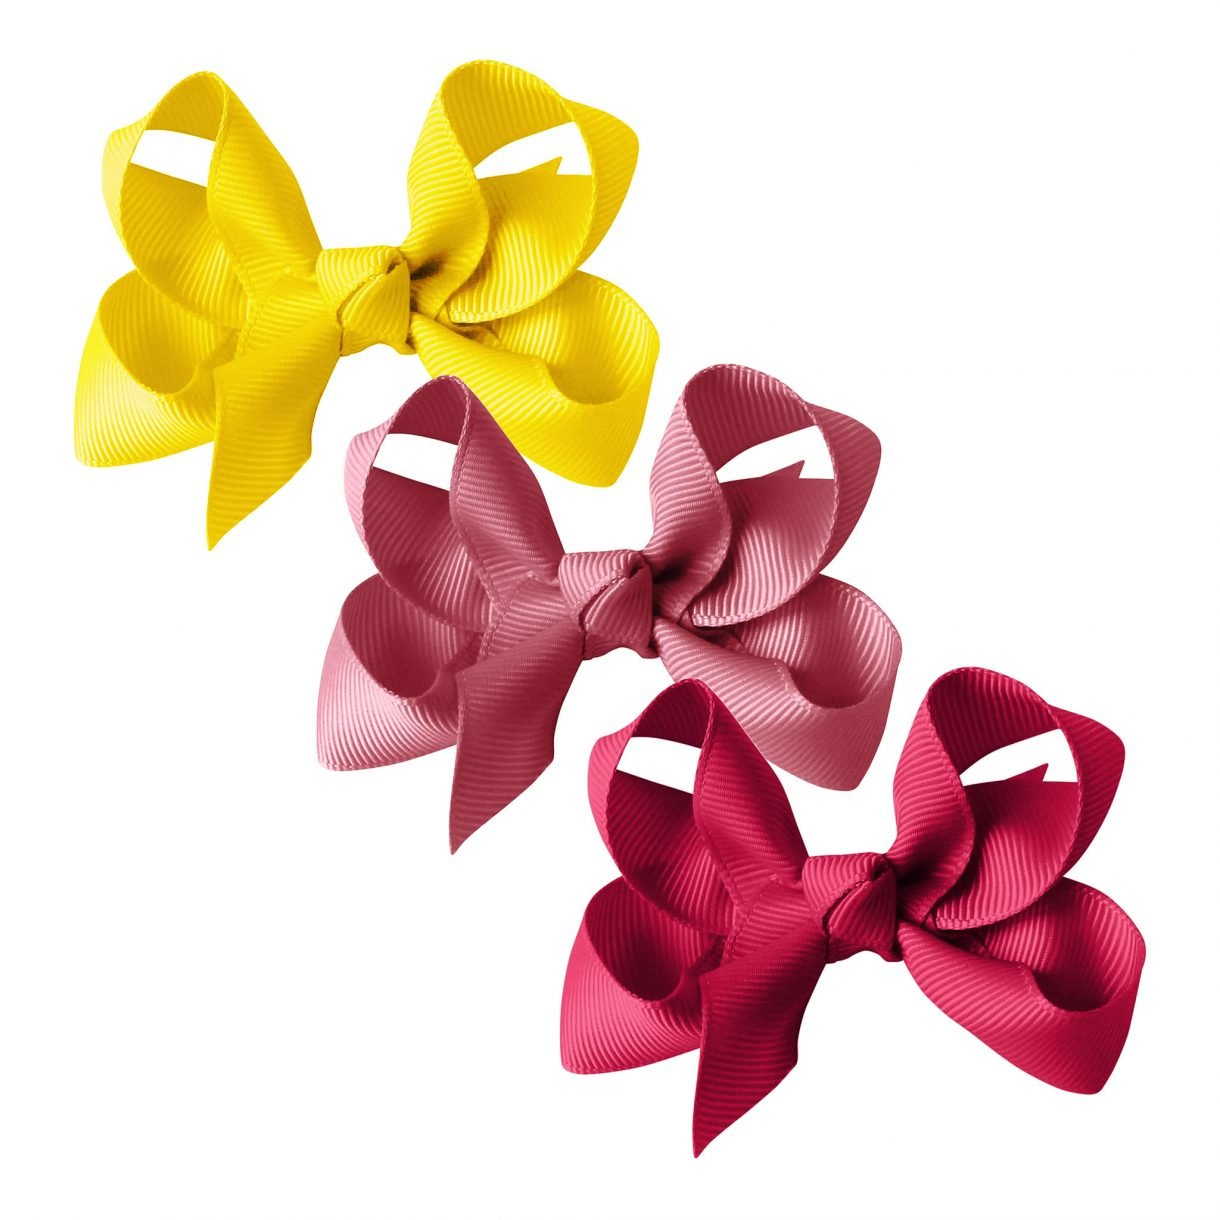 GROSGRAIN COLLECTION – 3 MEDIUM BOUTIQUE BOWS – YELLOW/PINK